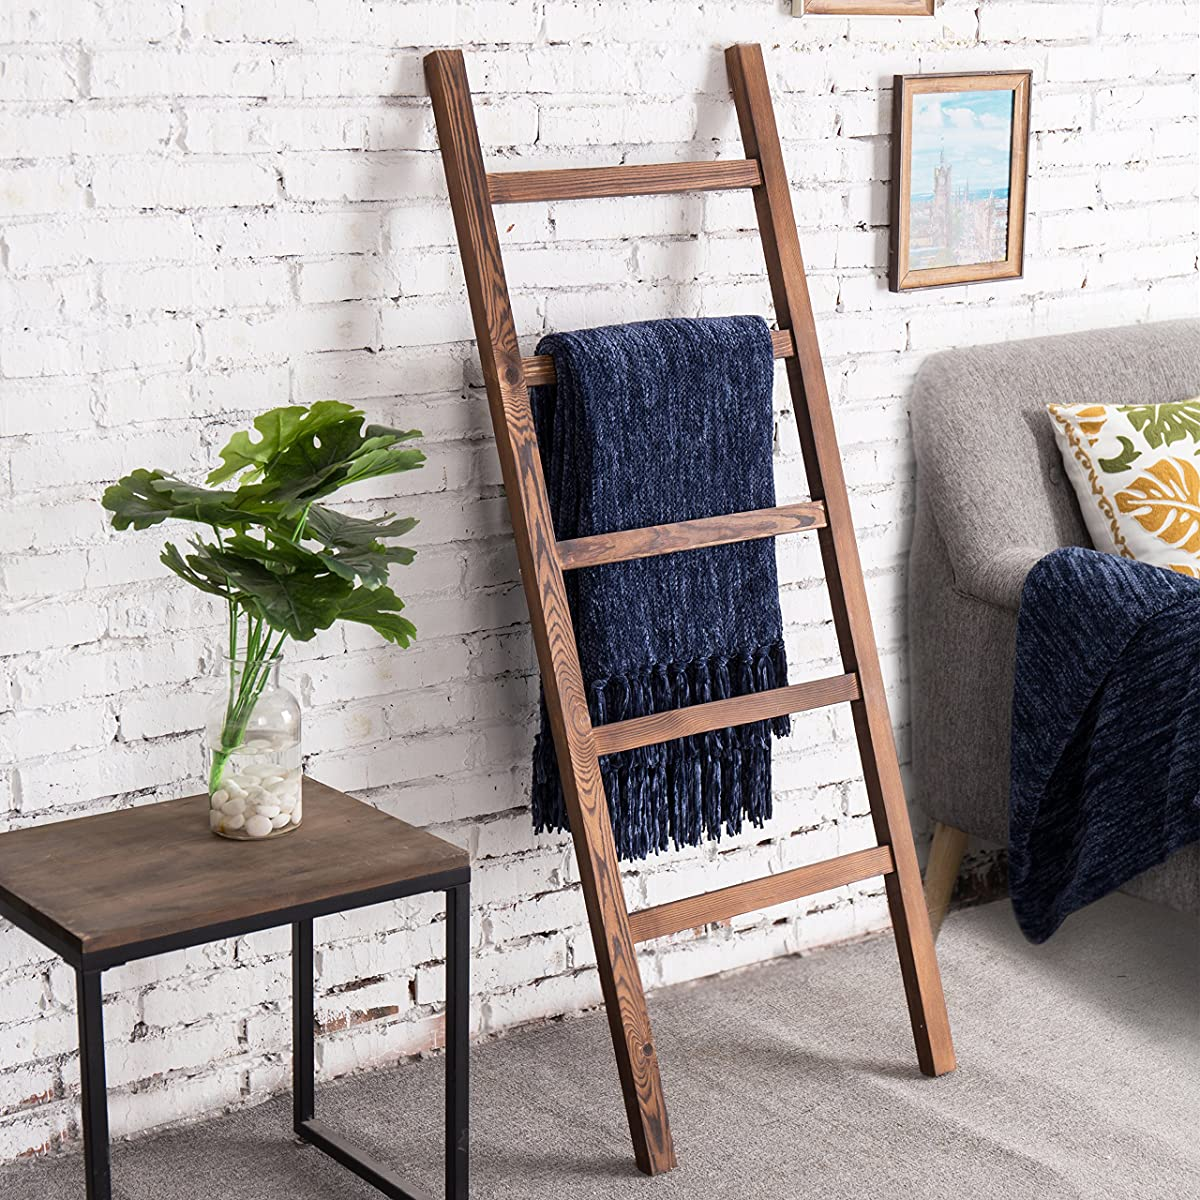 MyGift 4.5-Foot Brown Wood Decorative Blanket Storage Ladder